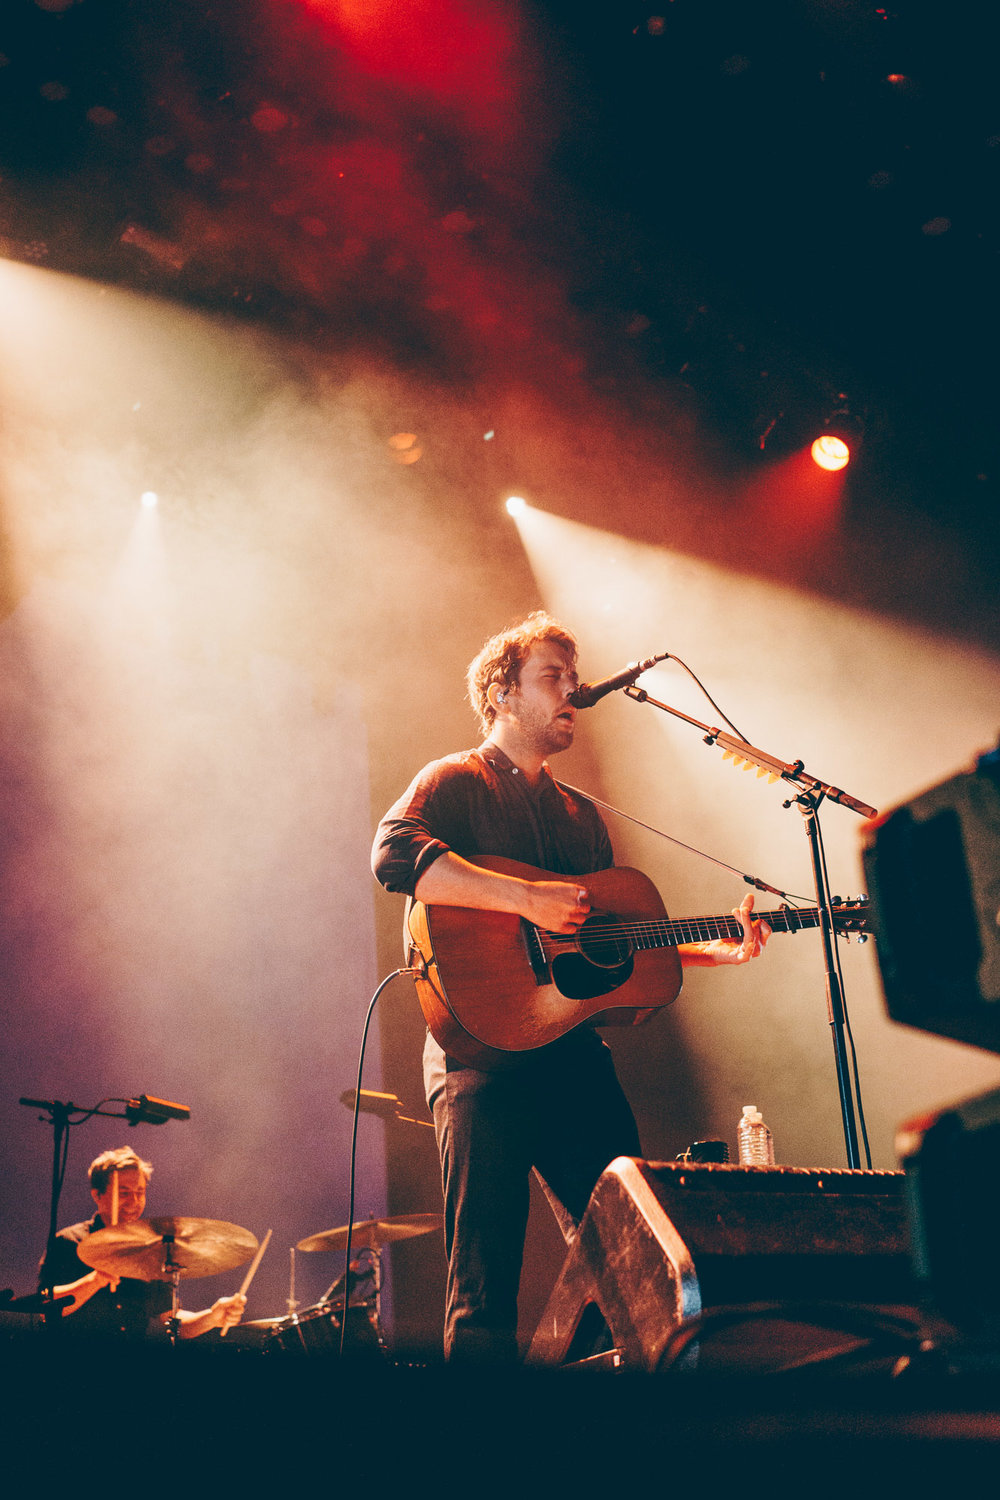 Fleet Foxes - Britton Strickland (3 of 16).jpg